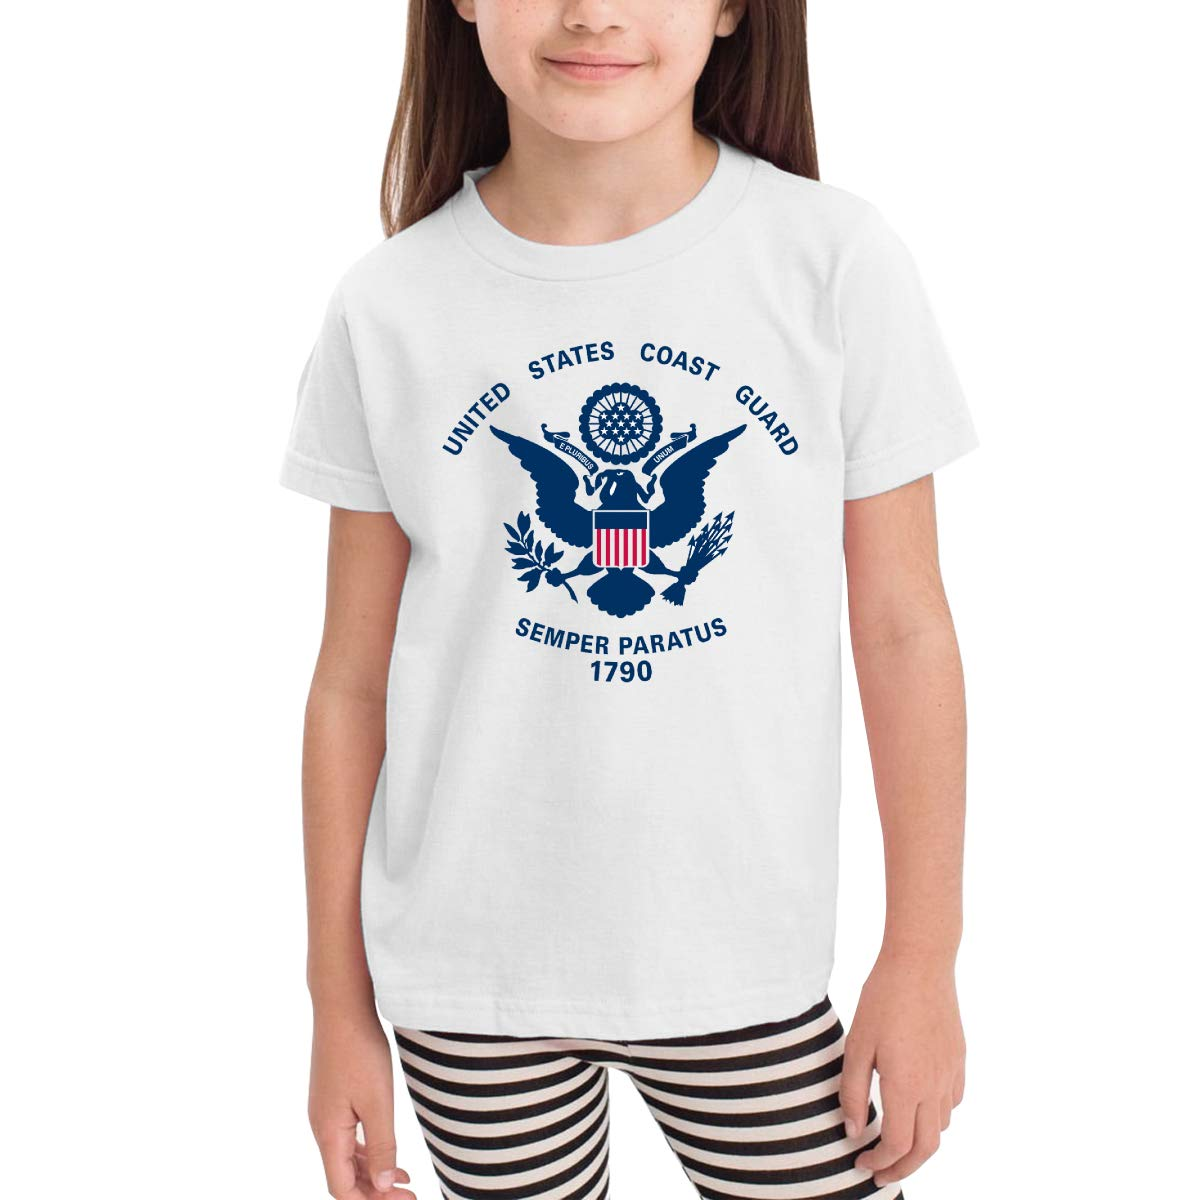 United States Coast Guard 100/% Cotton Toddler Baby Boys Girls Kids Short Sleeve T Shirt Top Tee Clothes 2-6 T